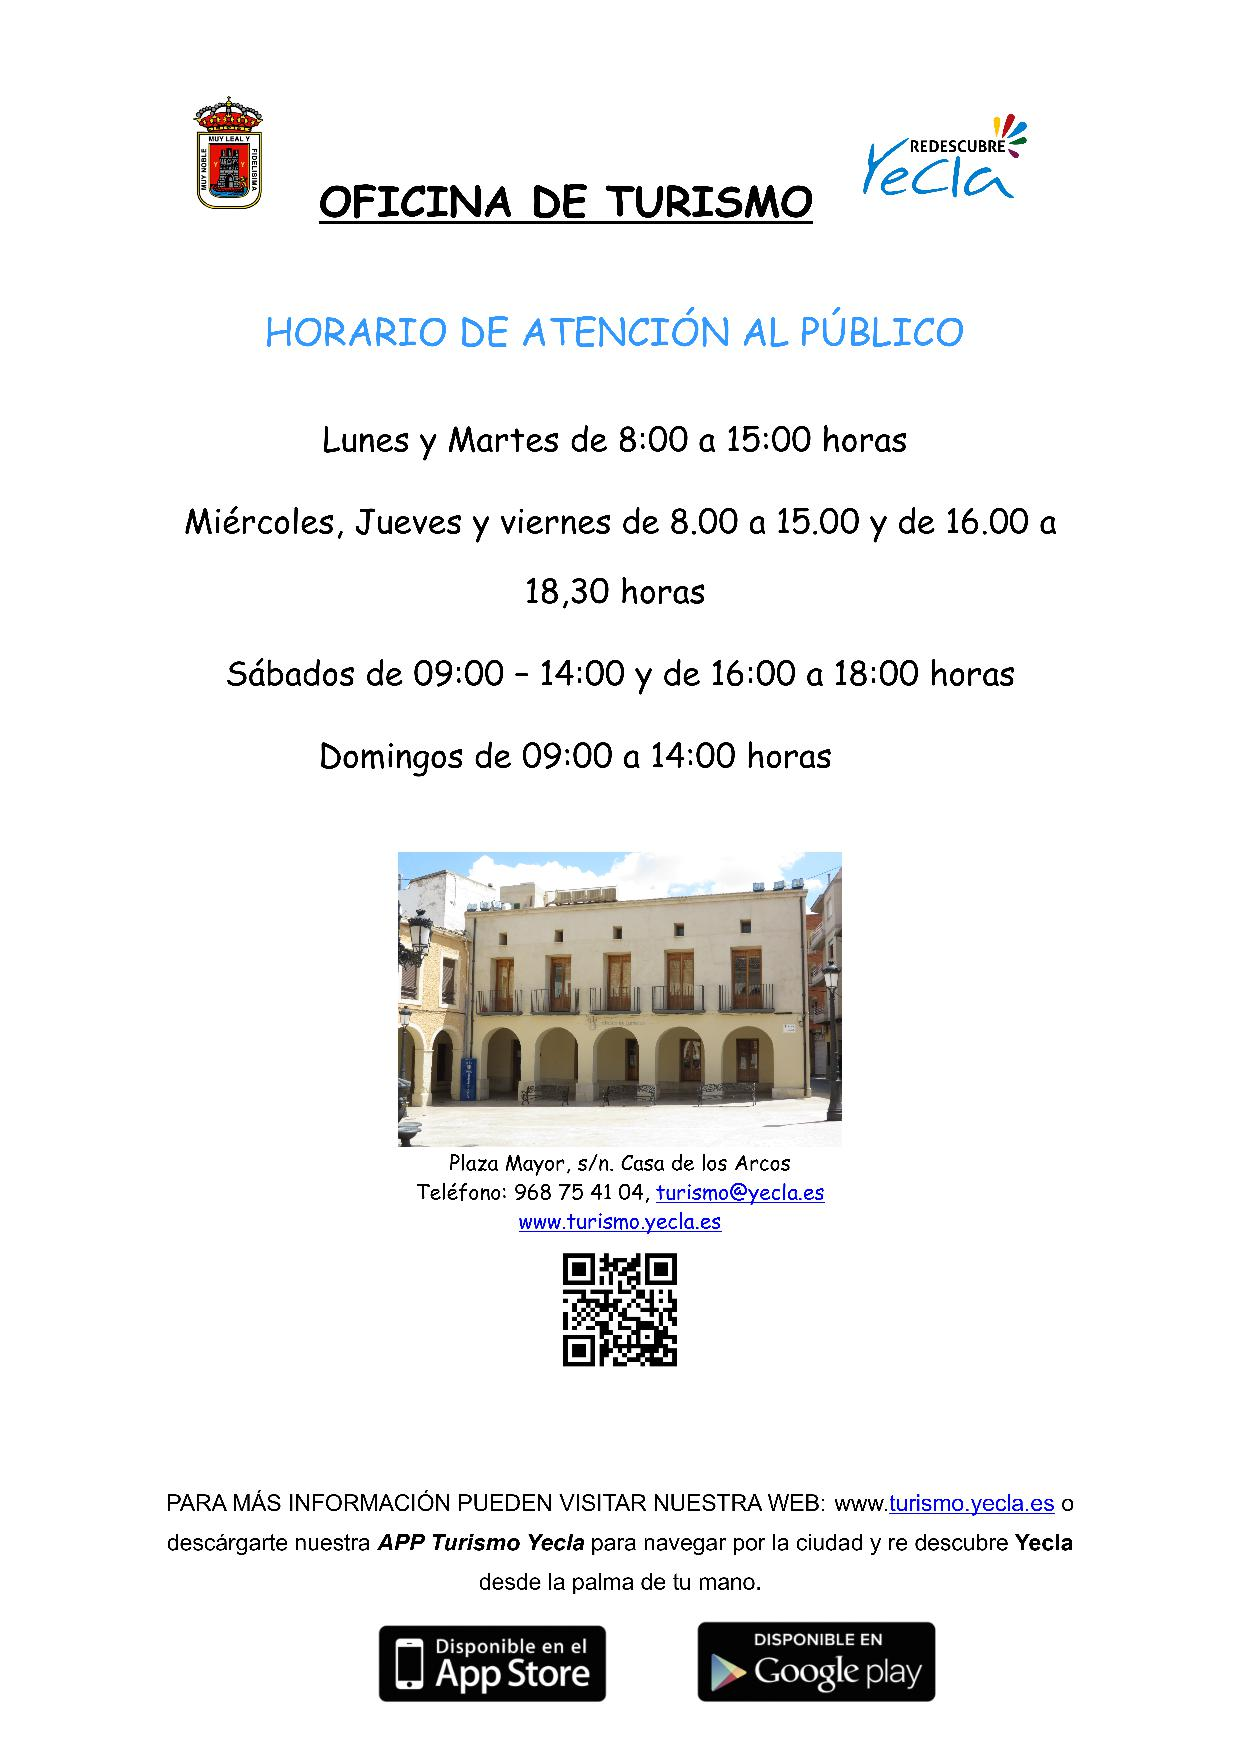 Office hours of the Tourism Office of Yecla